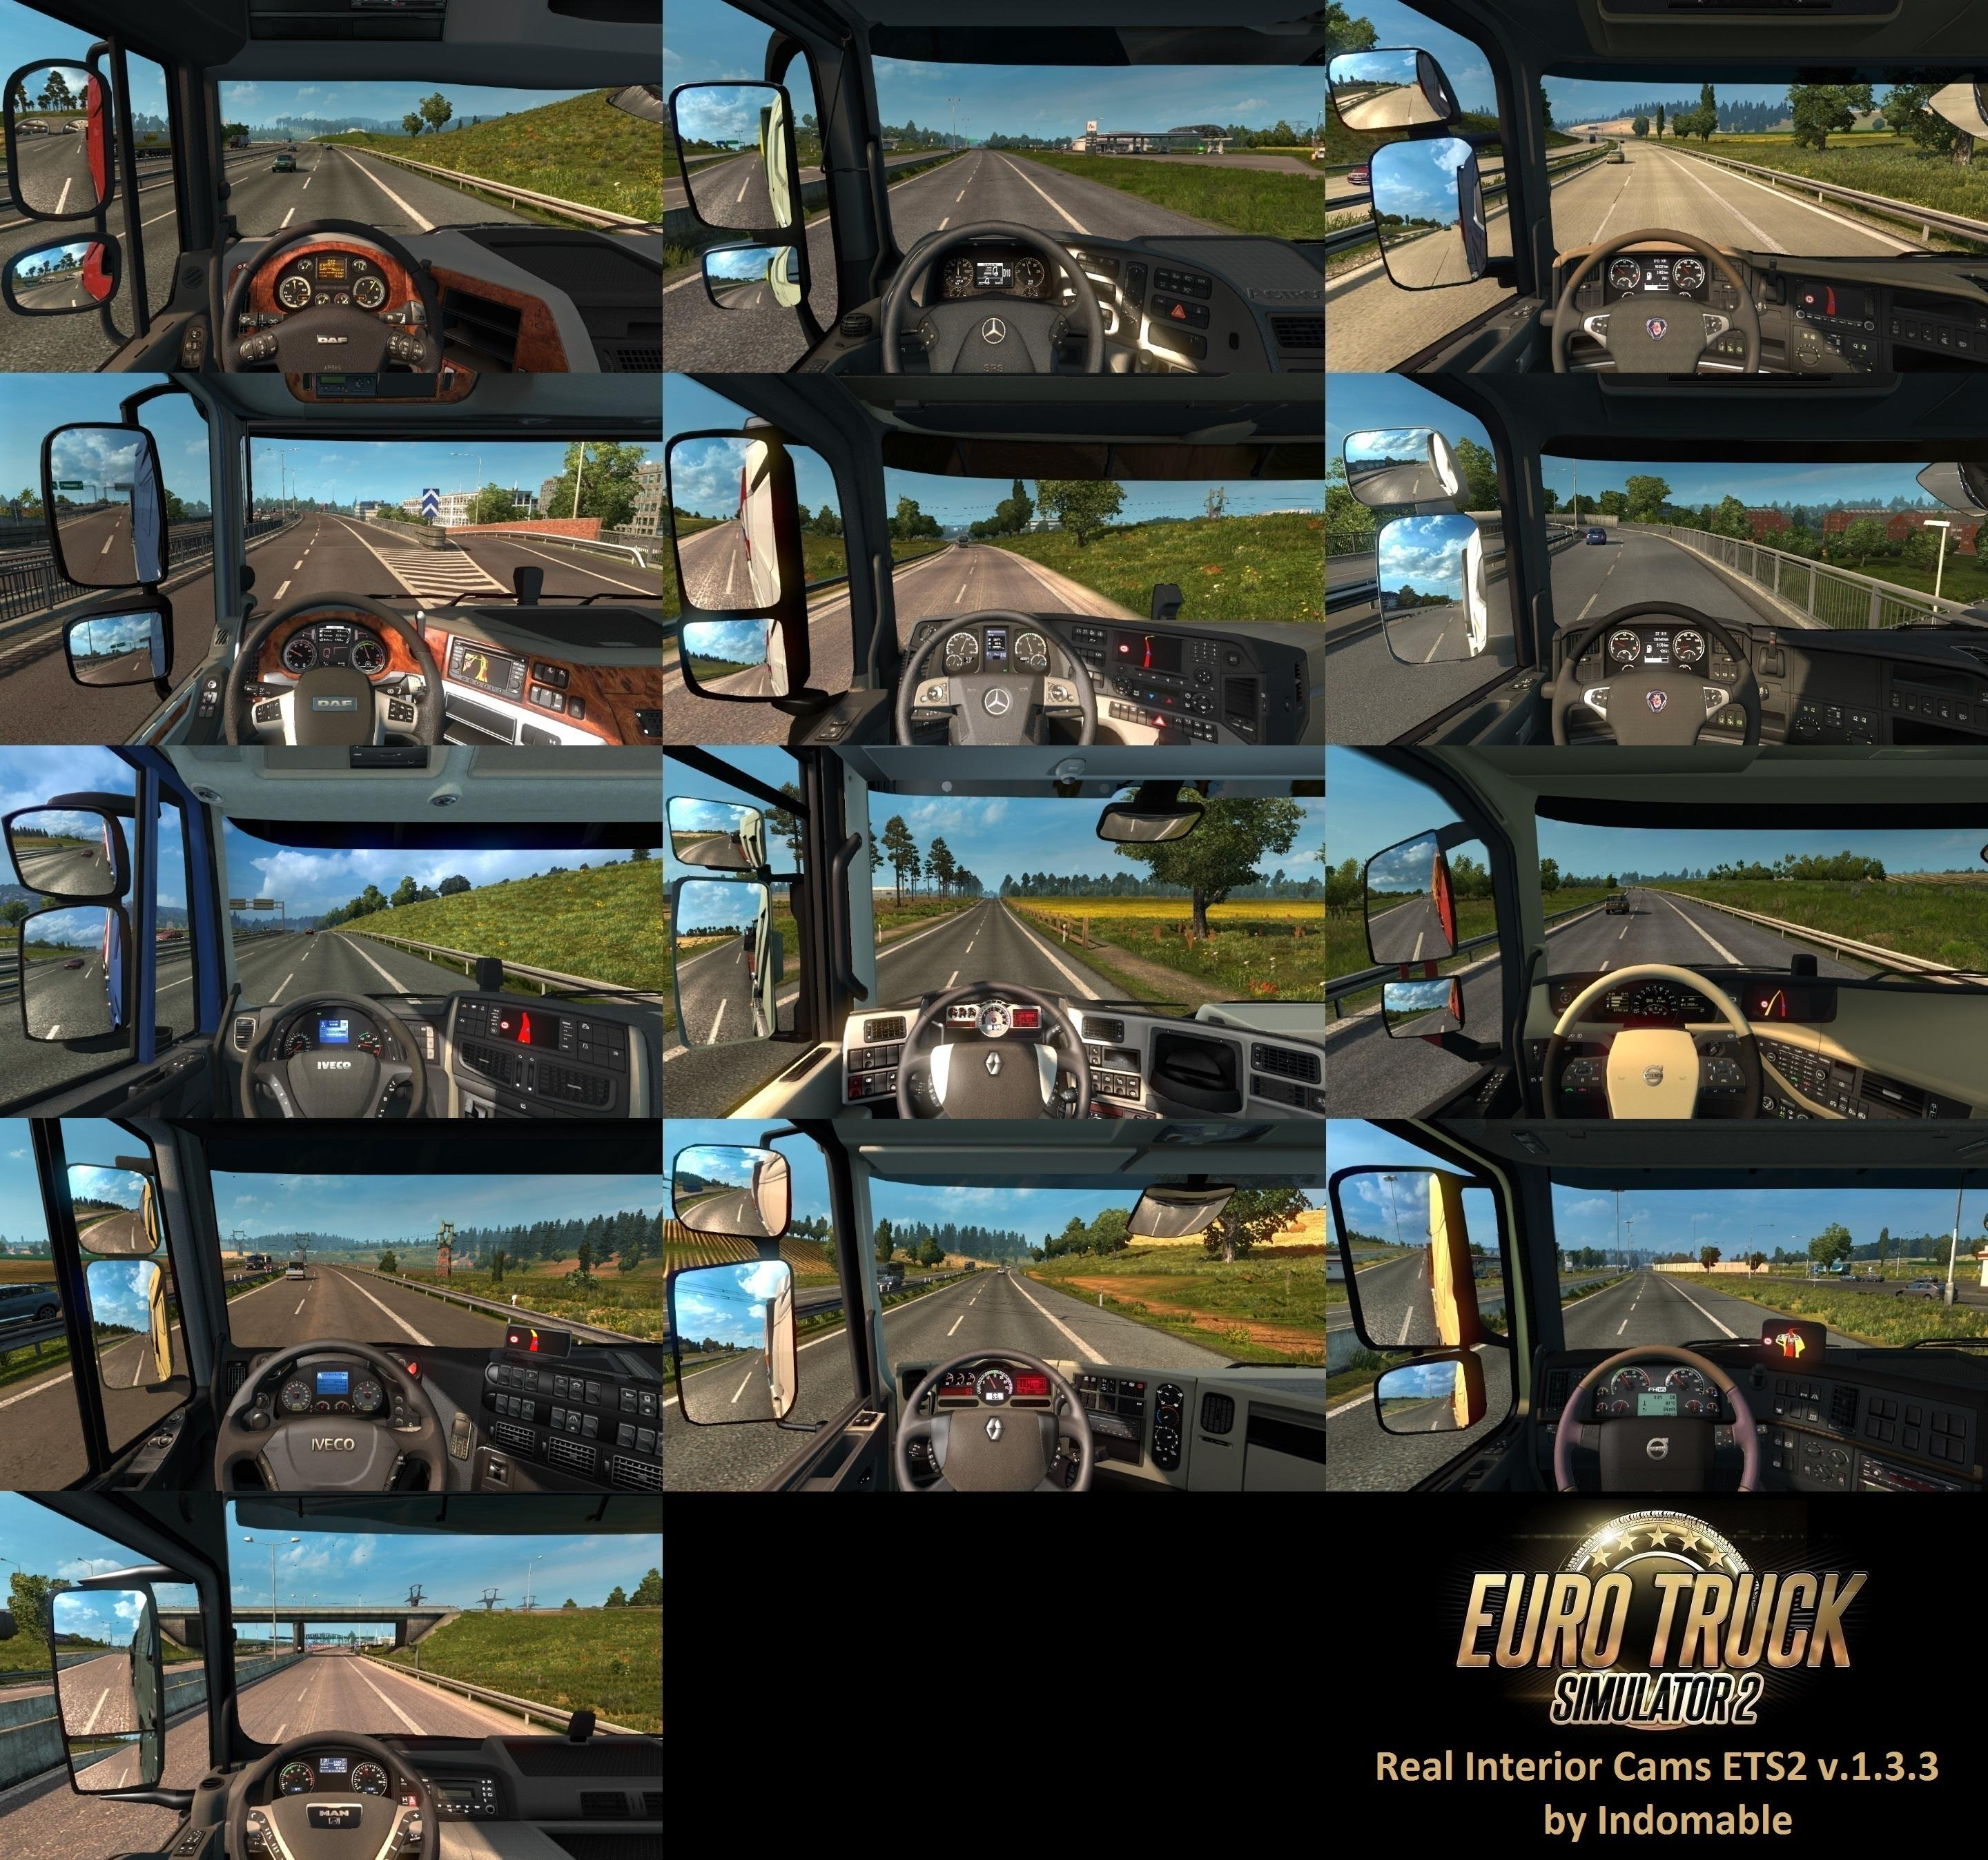 Real Interior Cams ETS2 v1.3.3 by Indomable for ETS 2